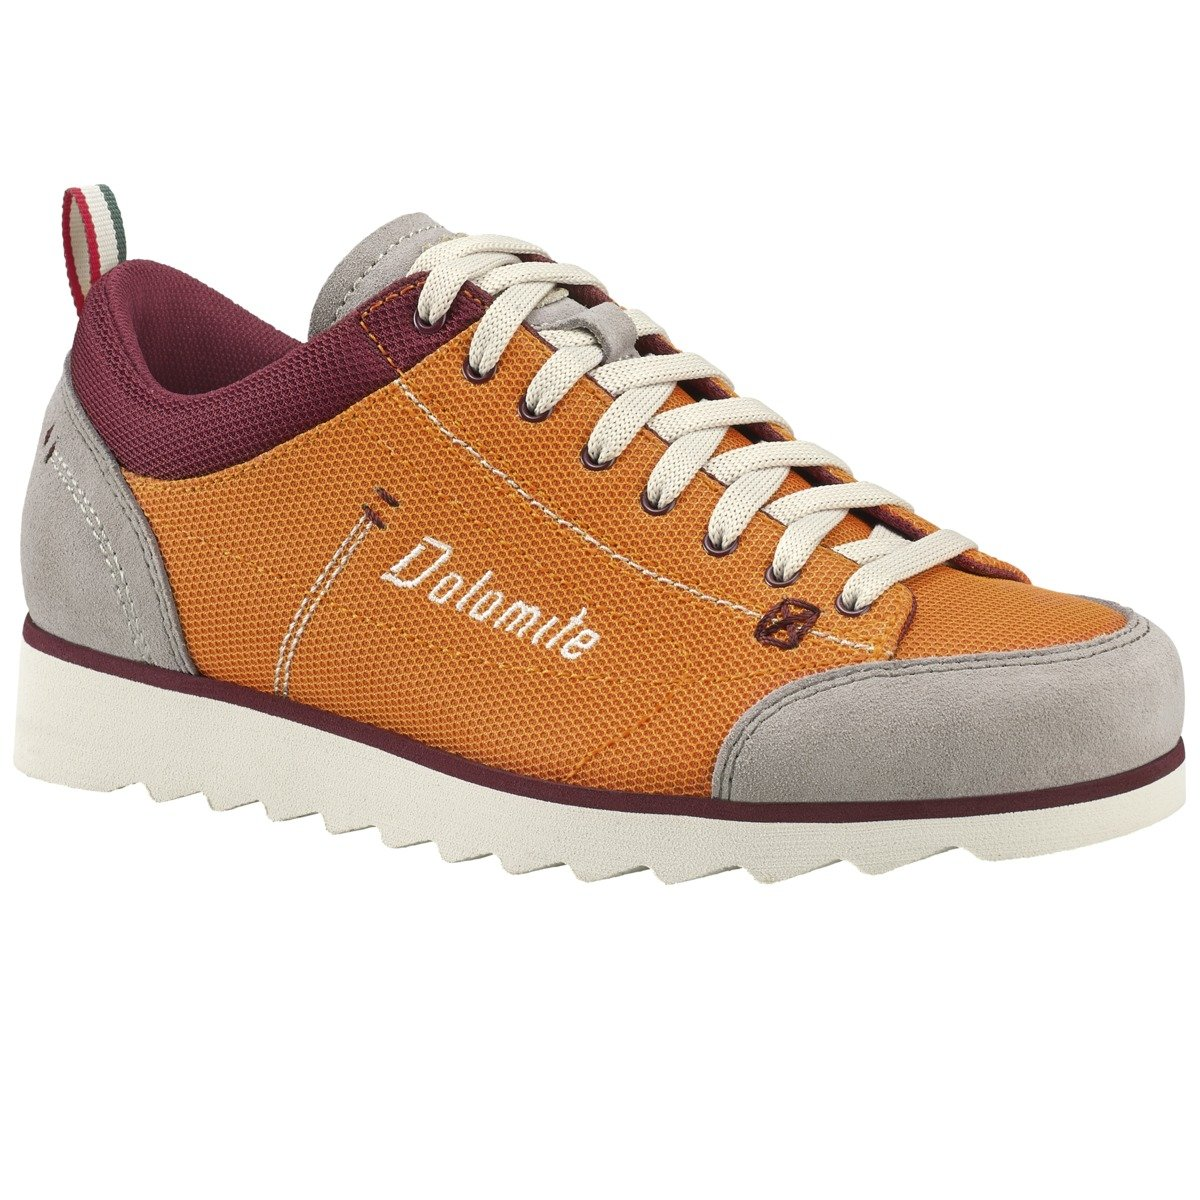 Dolomite Herren Freizeitschuhe Cinquantaquattro Travel Sport Orange/Burgundy ROT 8 UK